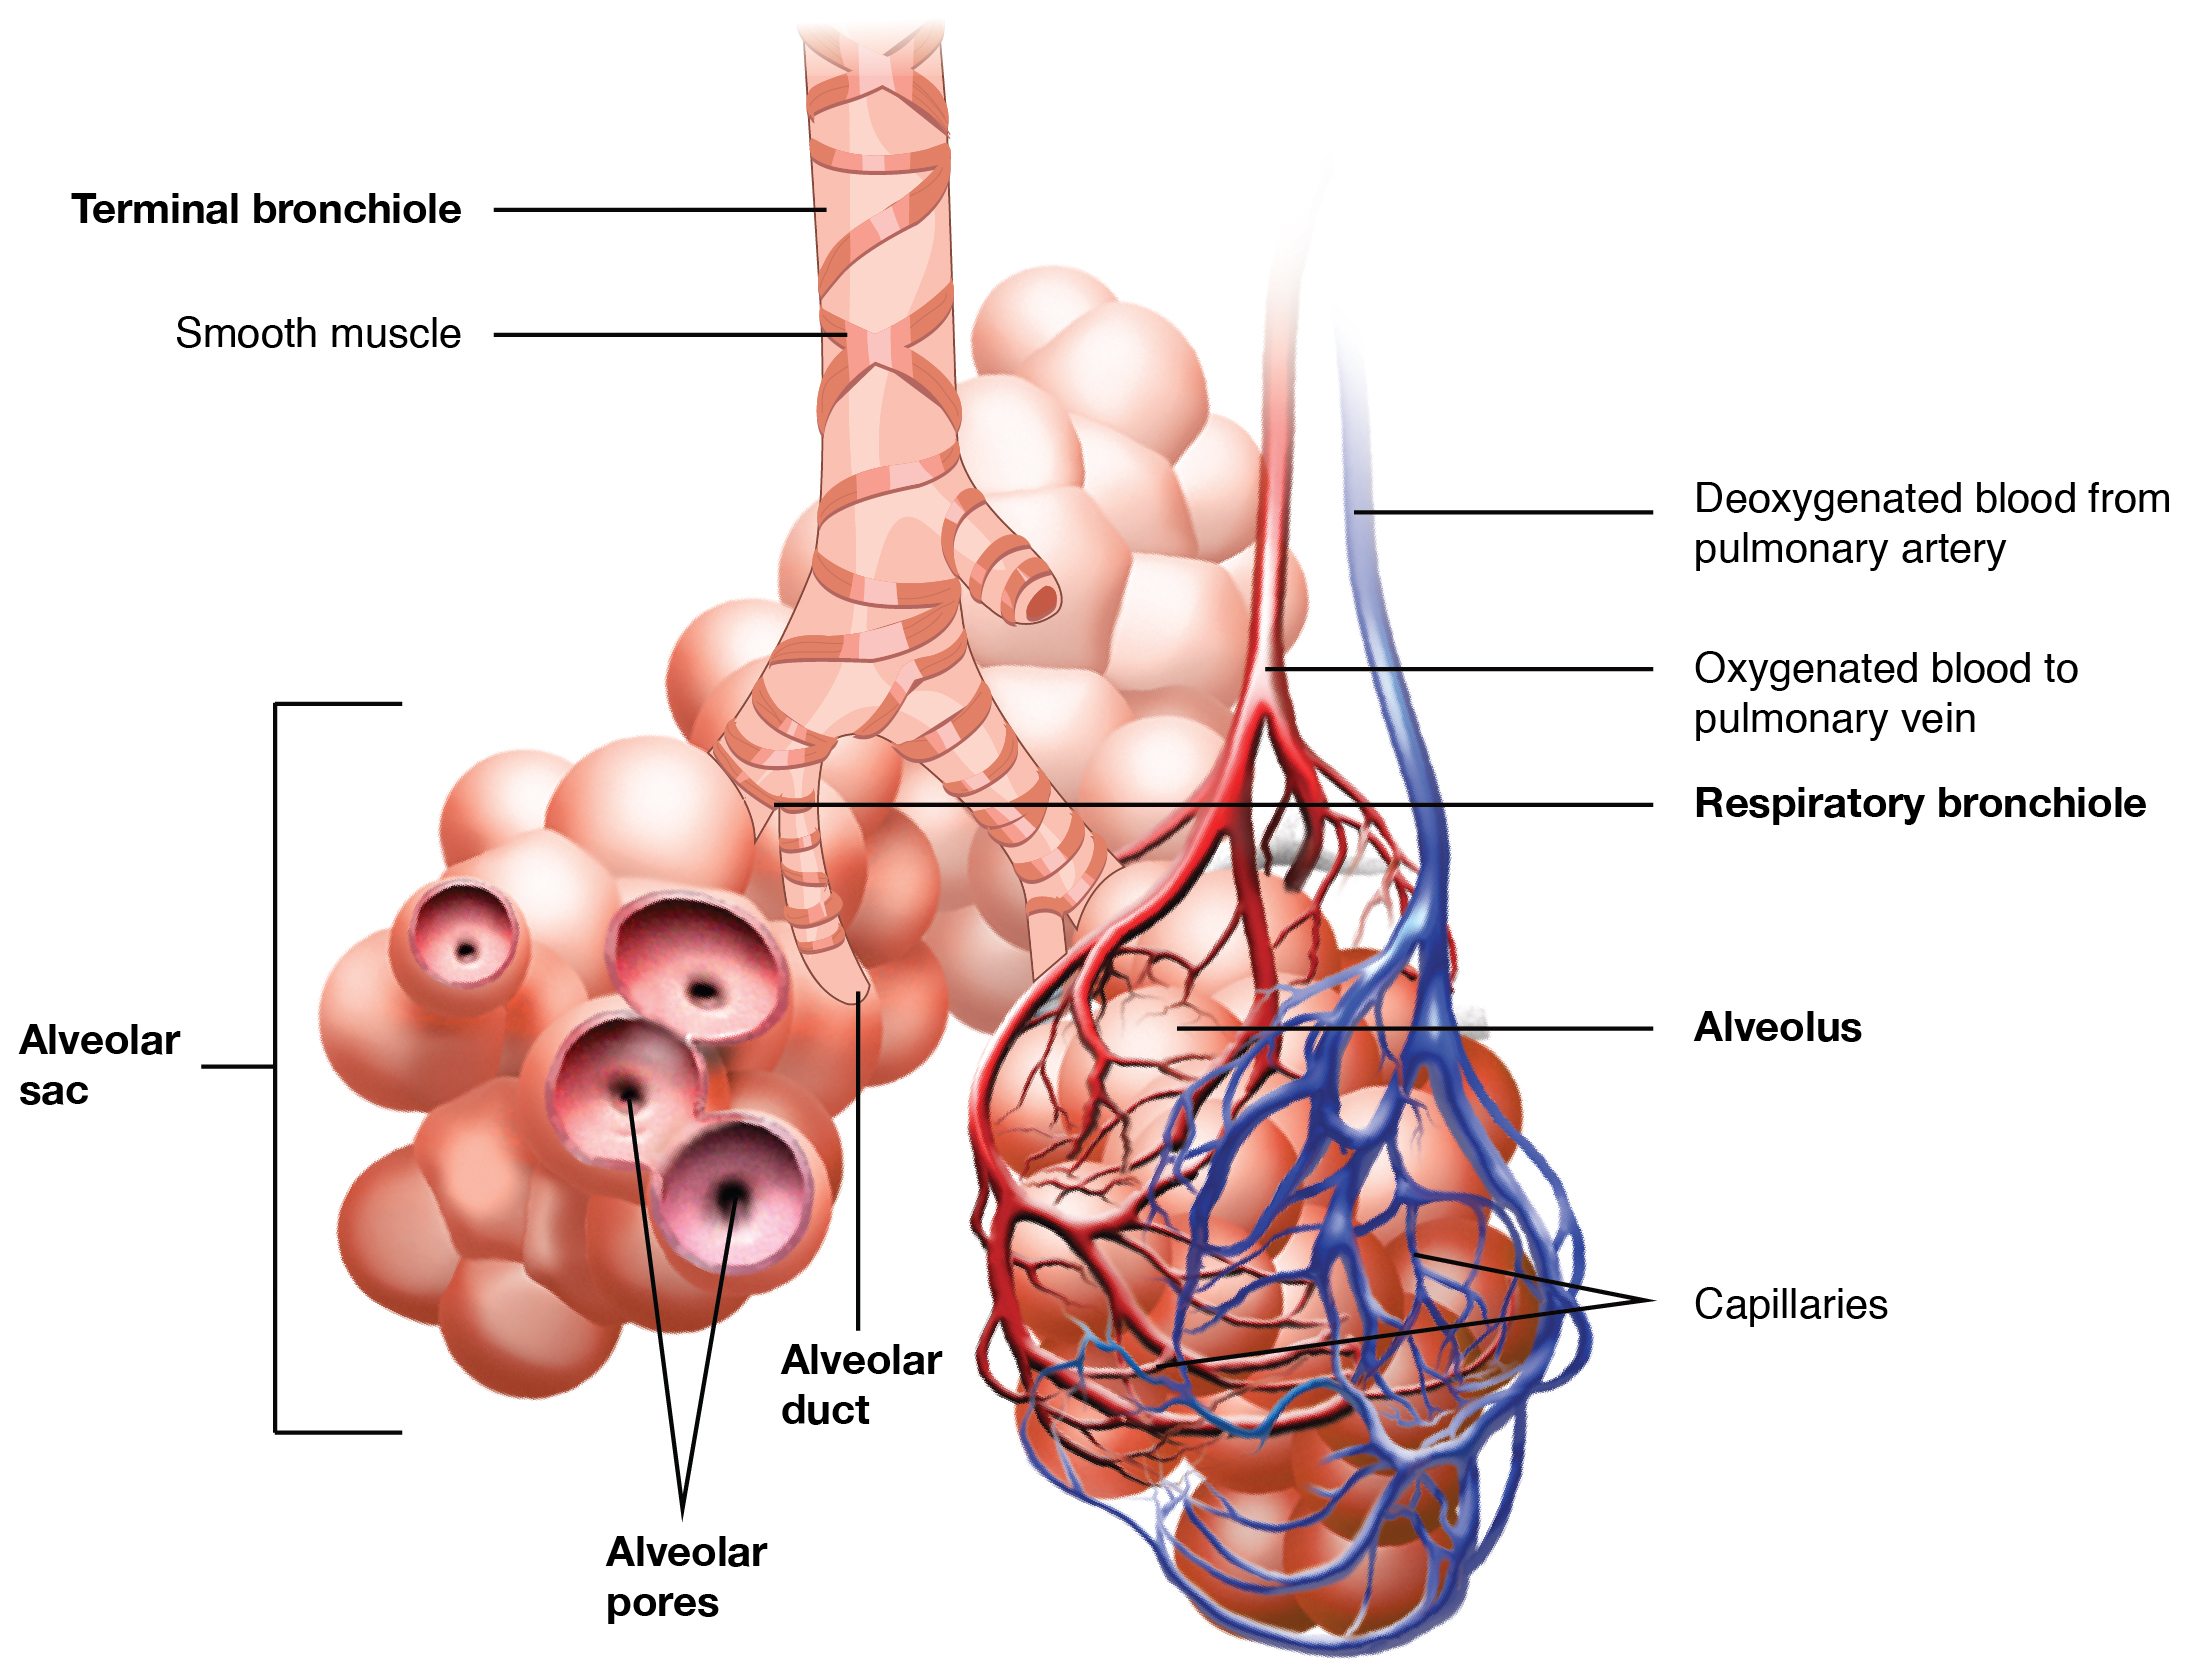 Anatomy and Physiology - Organs and Structures of the Respiratory System